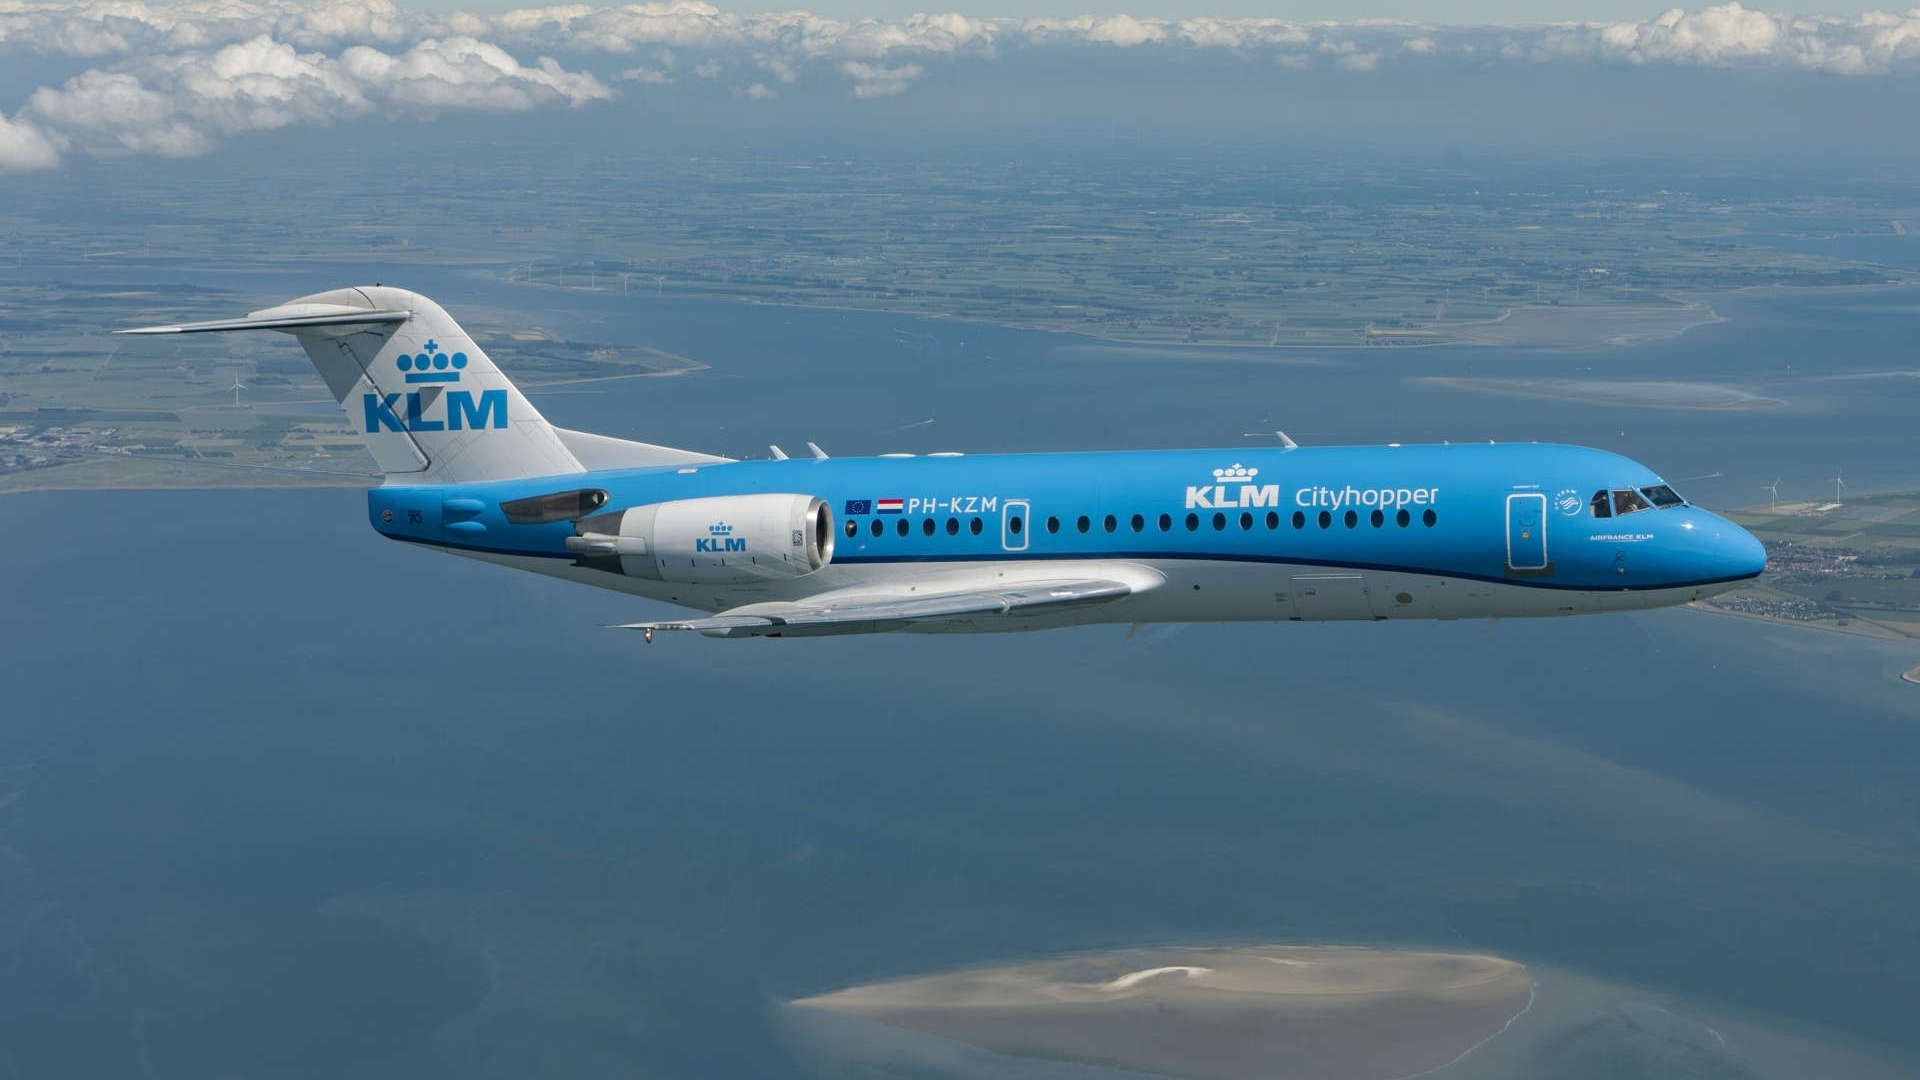 Our Mission To Capture The Fokker 70 In Flight Vliegtuig